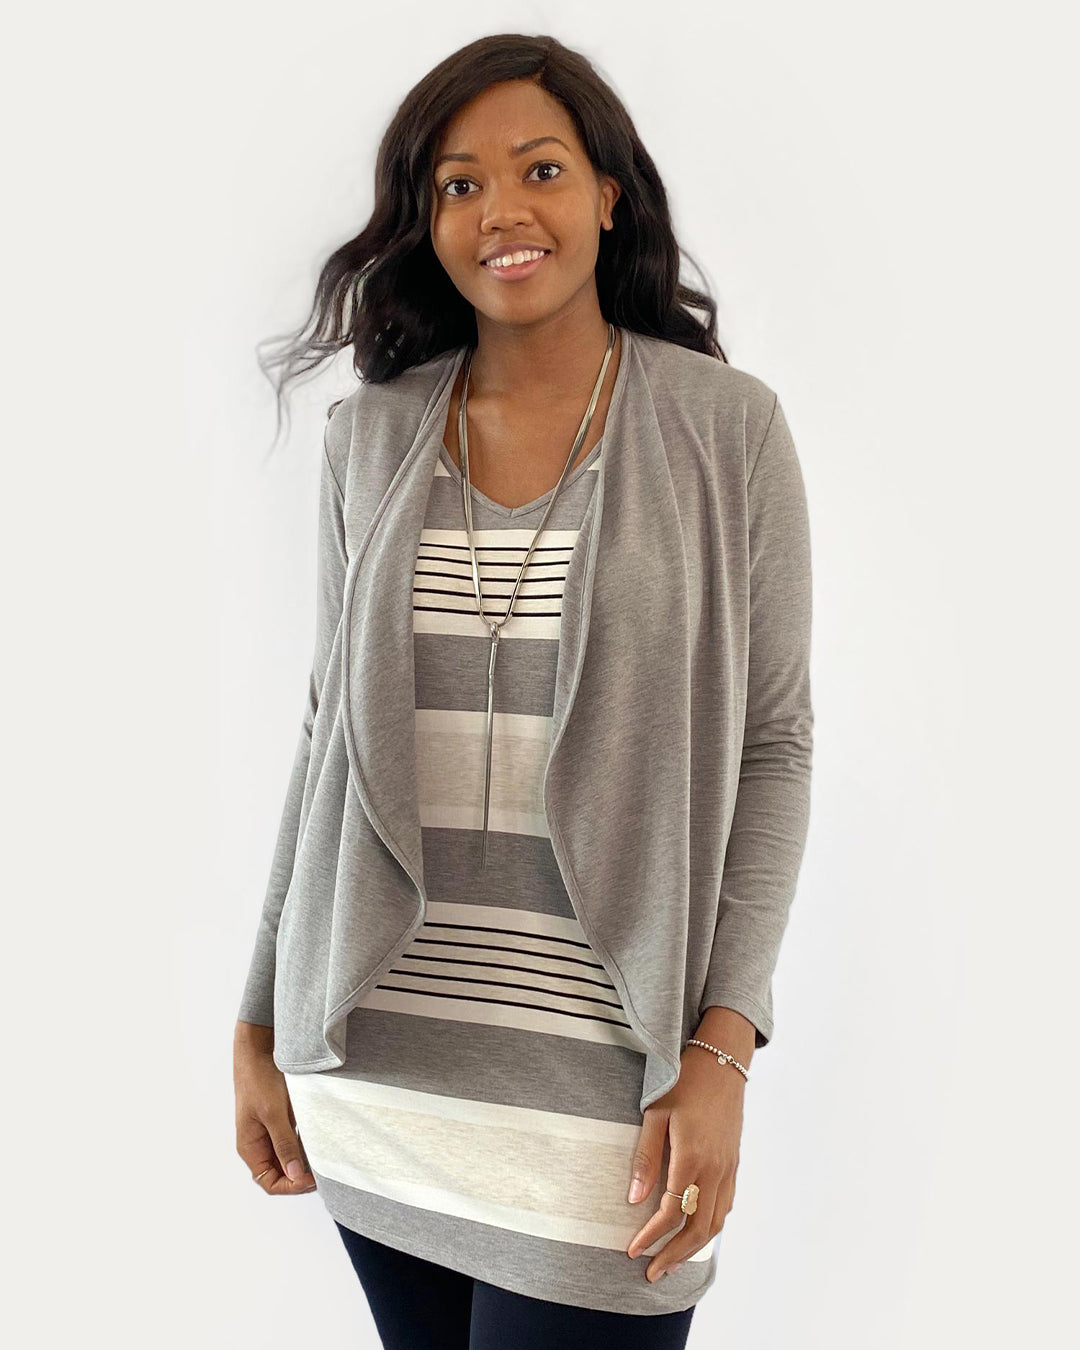 Woman wearing a grey cardigan over a striped top